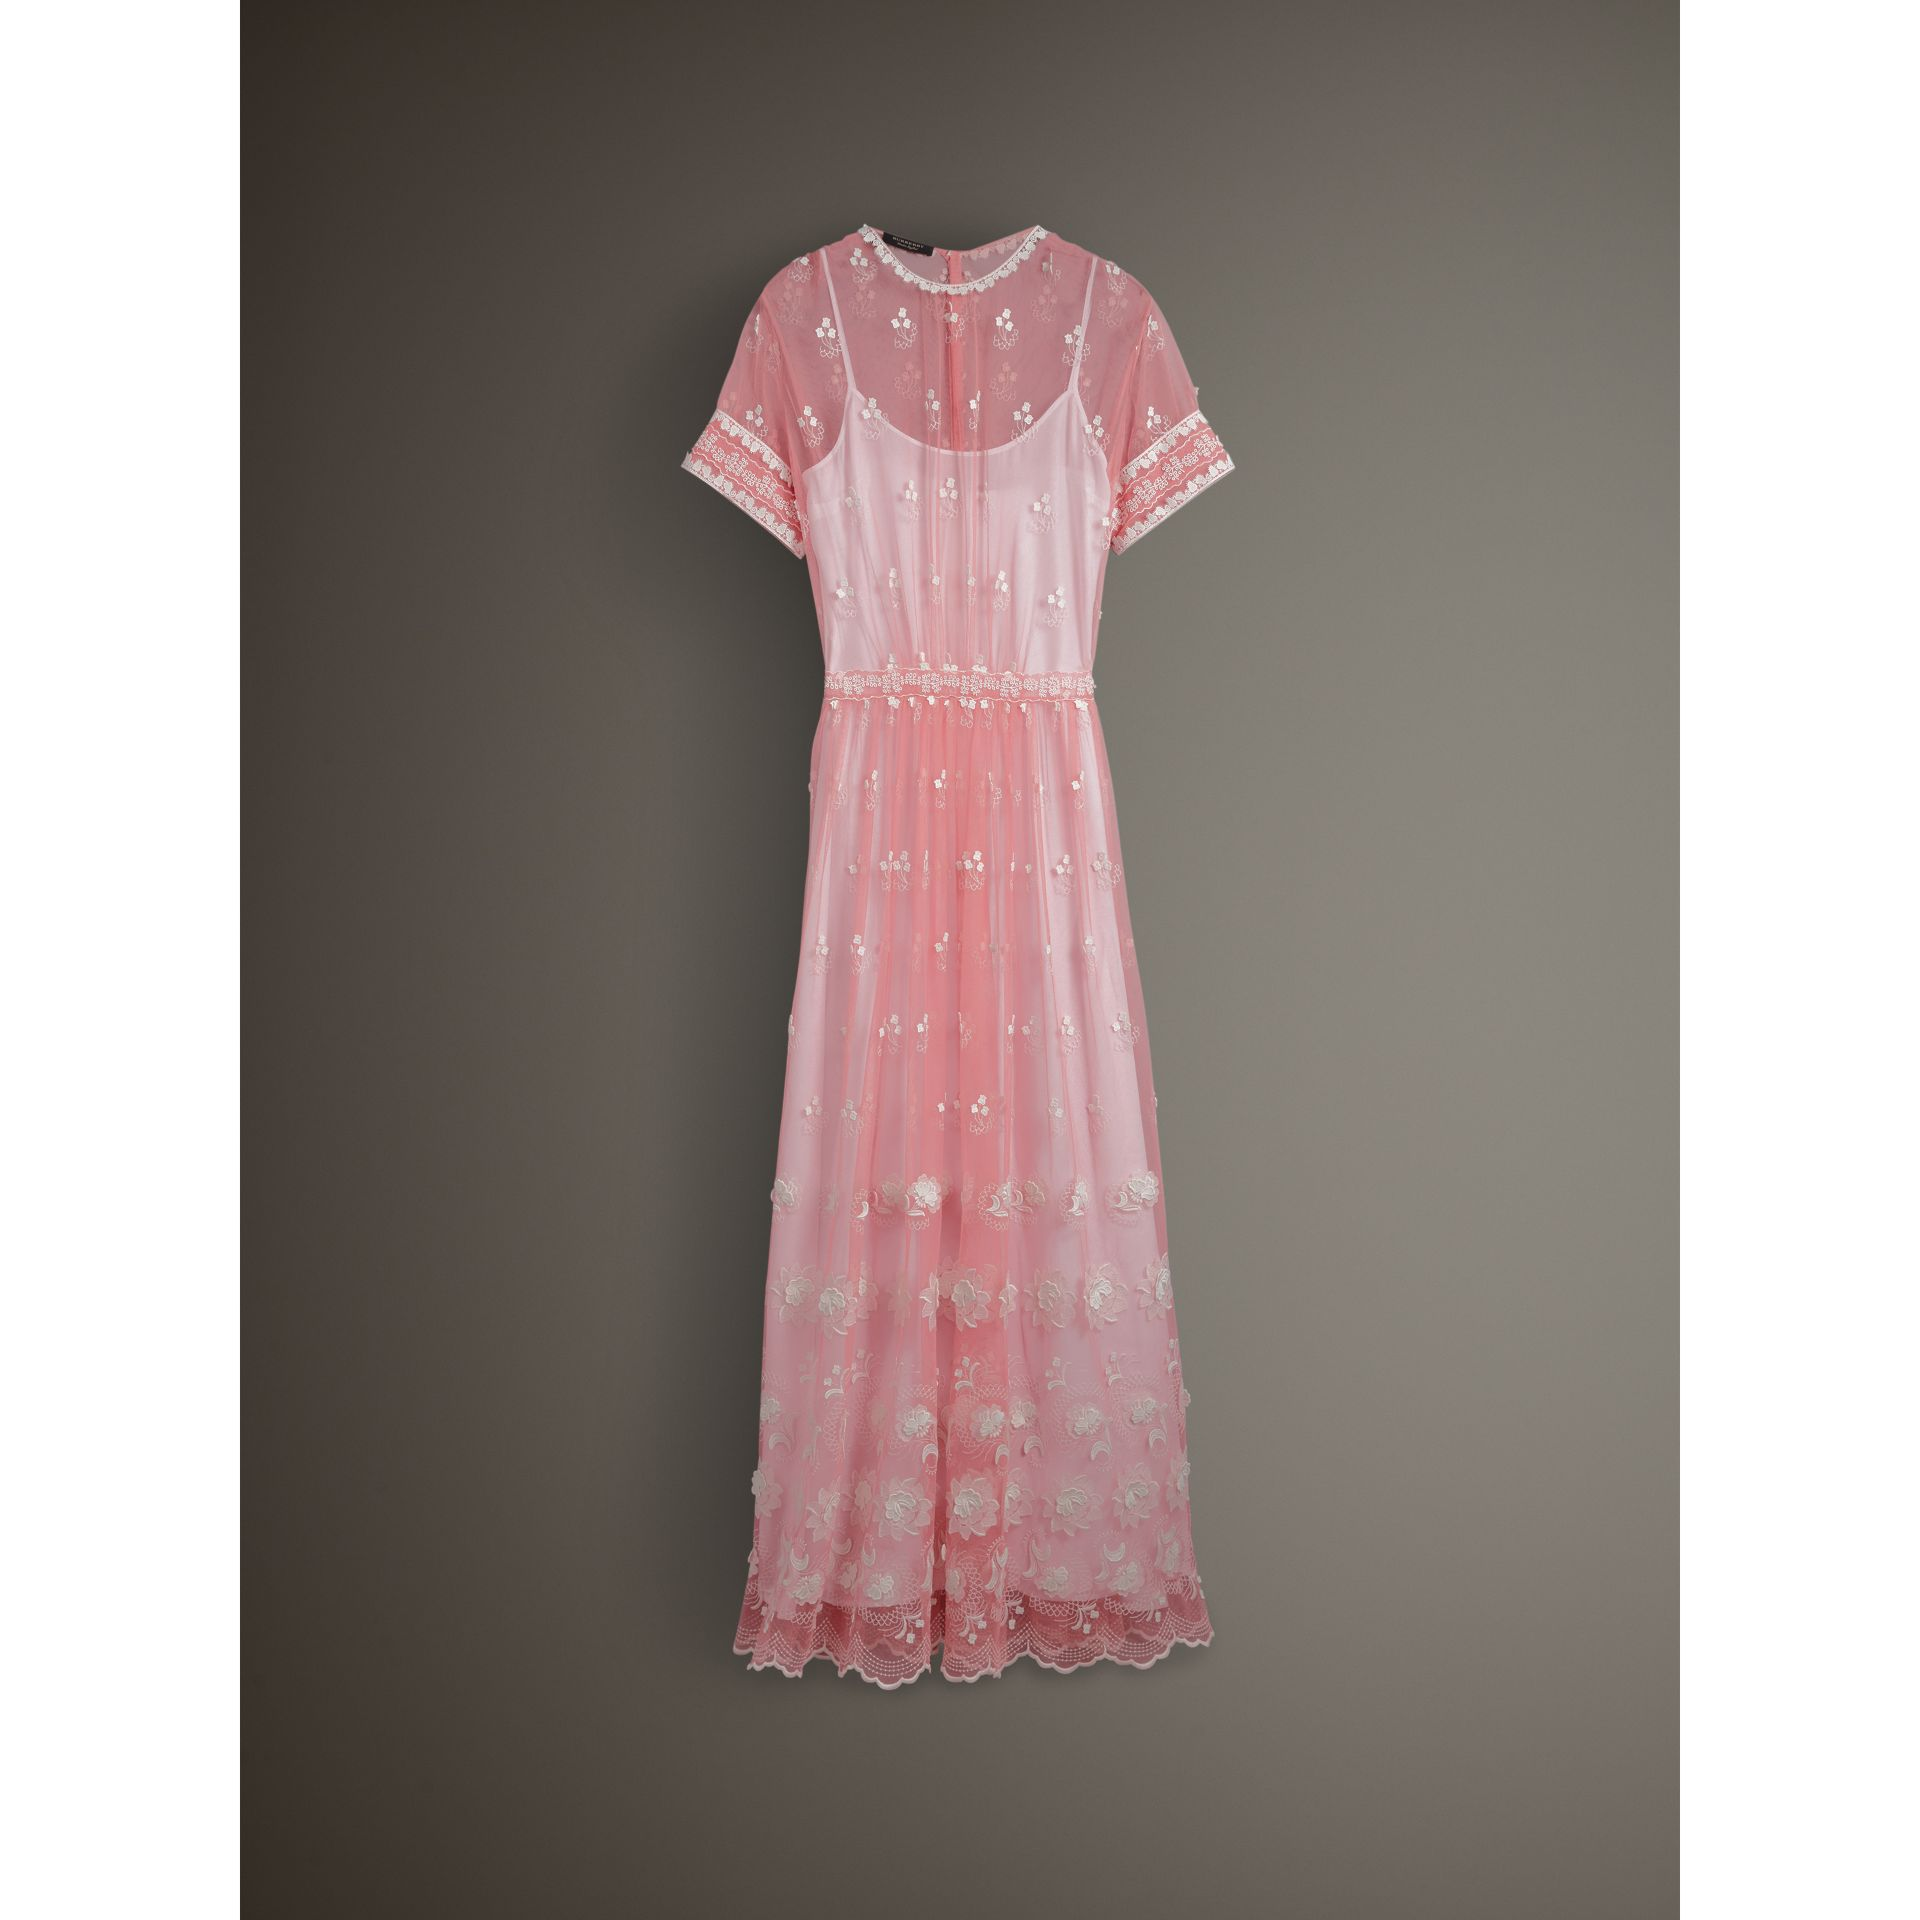 Short-sleeve Embroidered Tulle Dress in Rose Pink/white - Women | Burberry Australia - gallery image 3